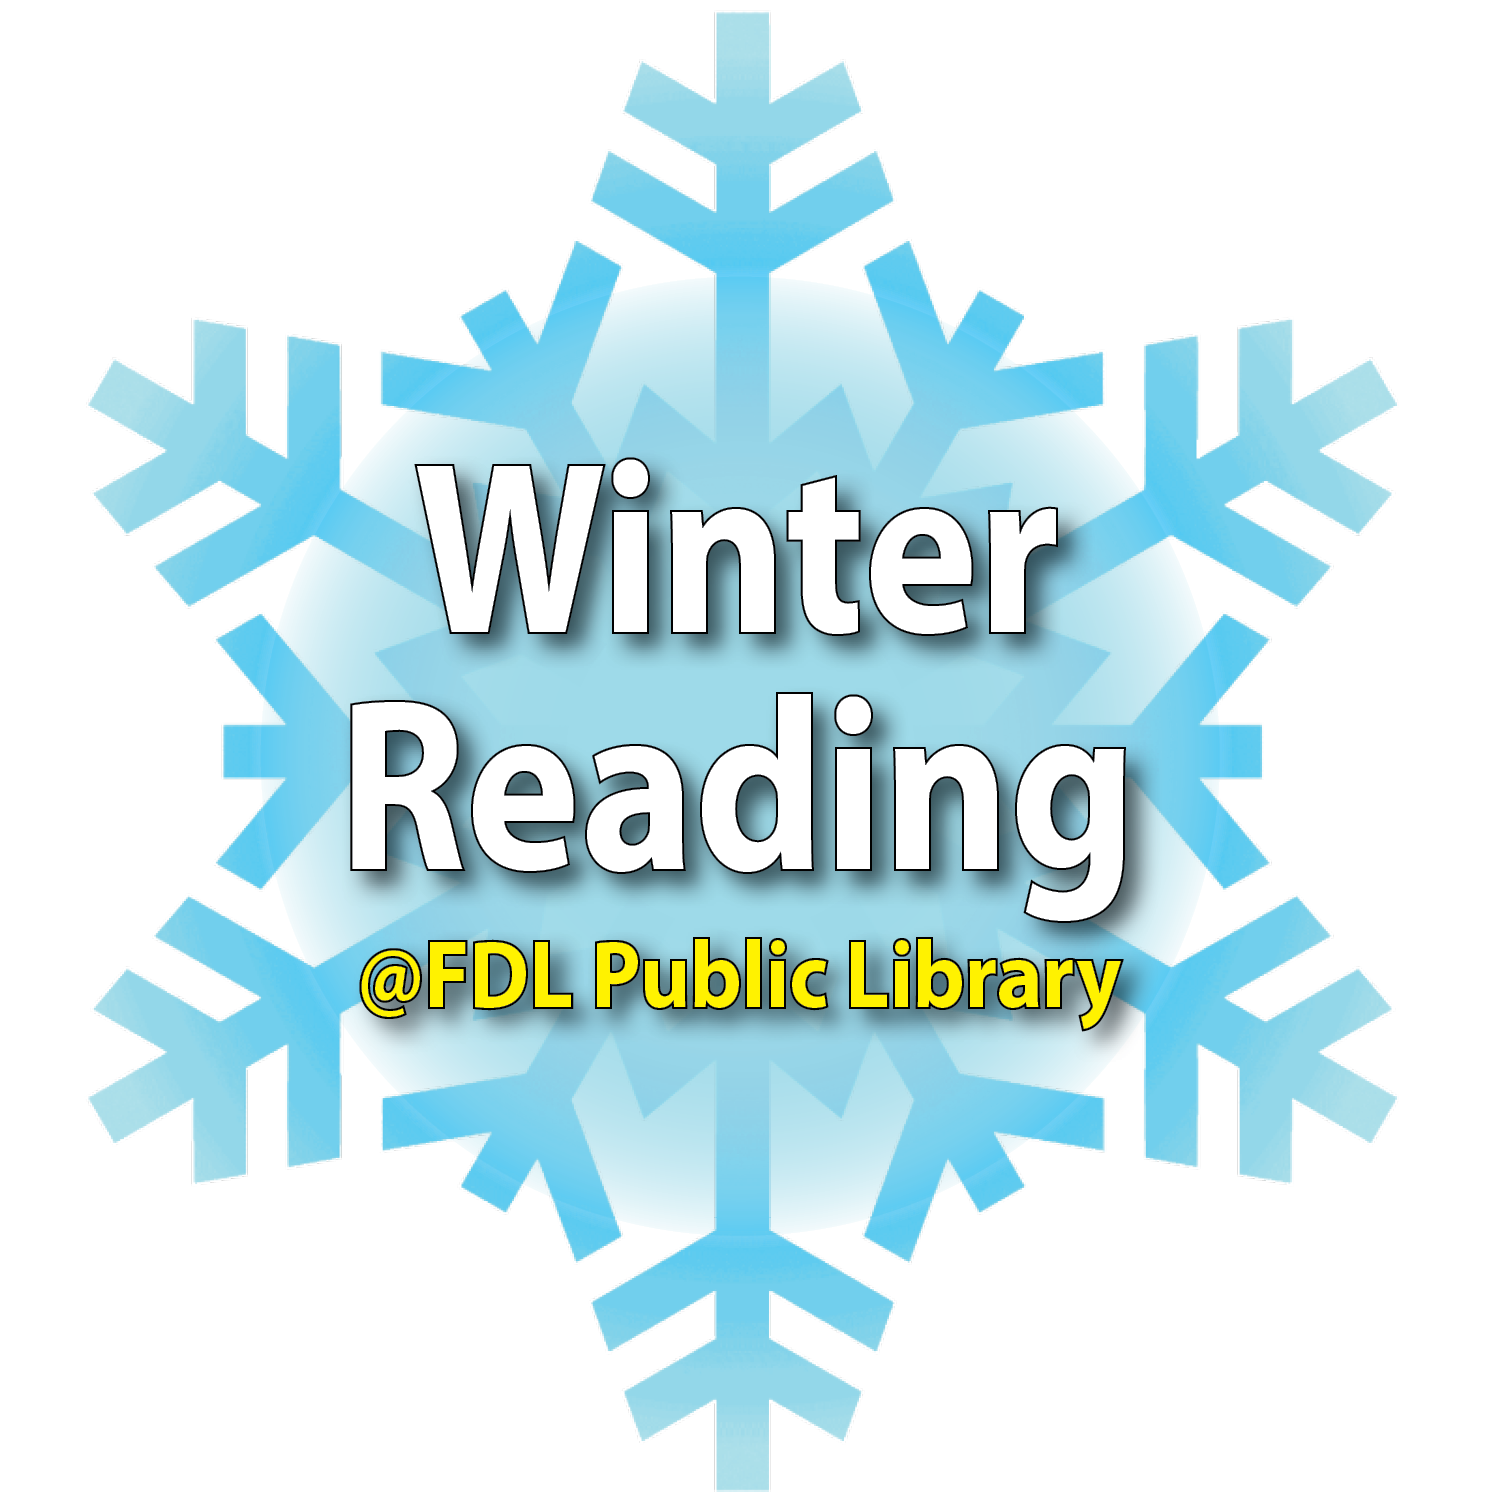 Winter Reading Program will heat up cold days with fun, prizes